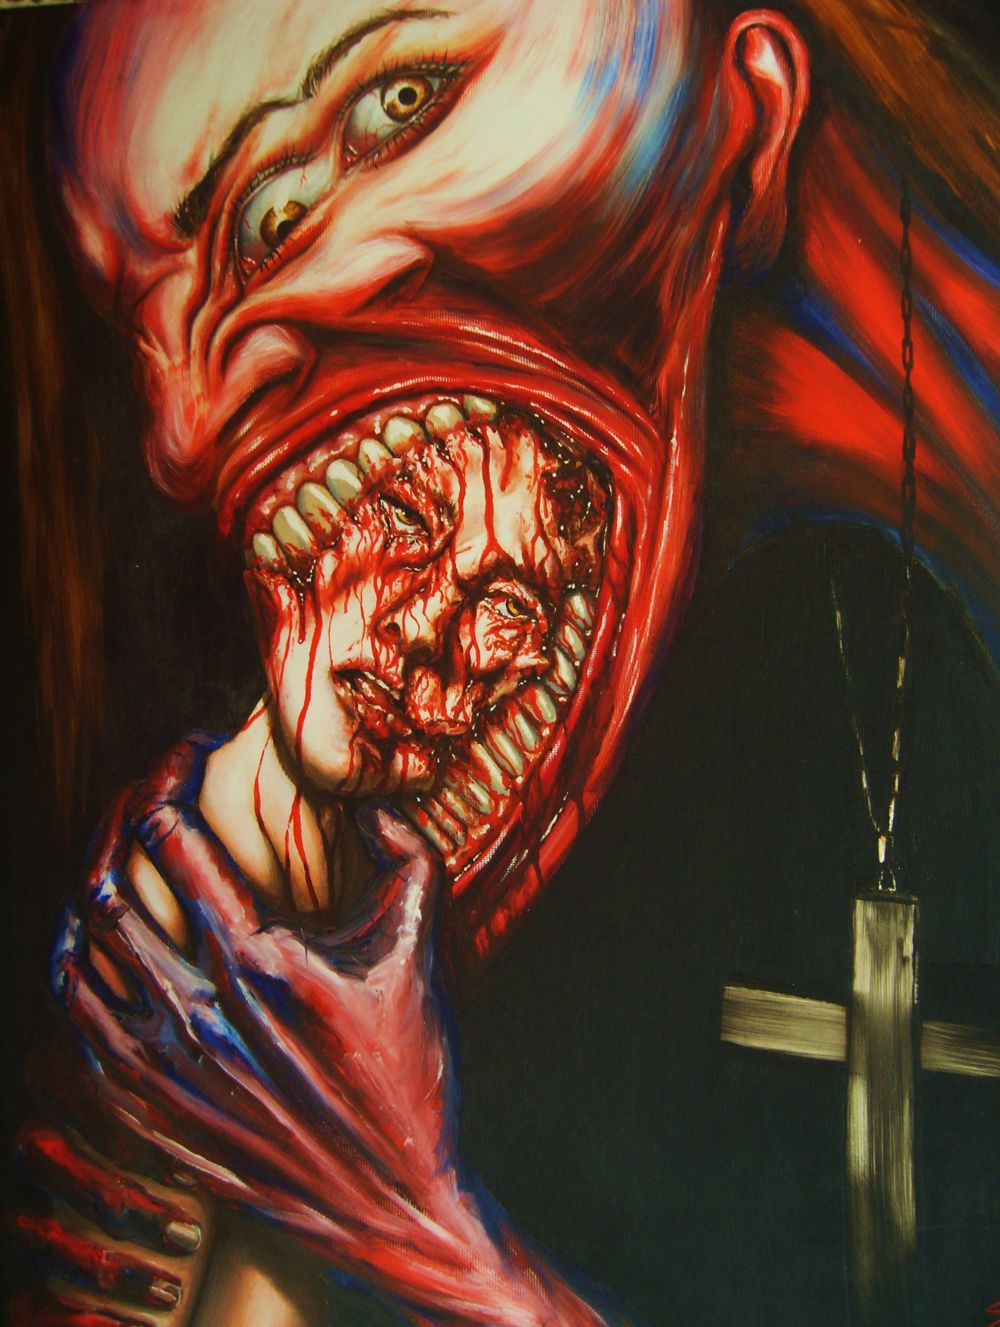 Symbols of hope and despair by the artist suzzan blac artwork symbols of hope and despair by the artist suzzan blac buycottarizona Image collections